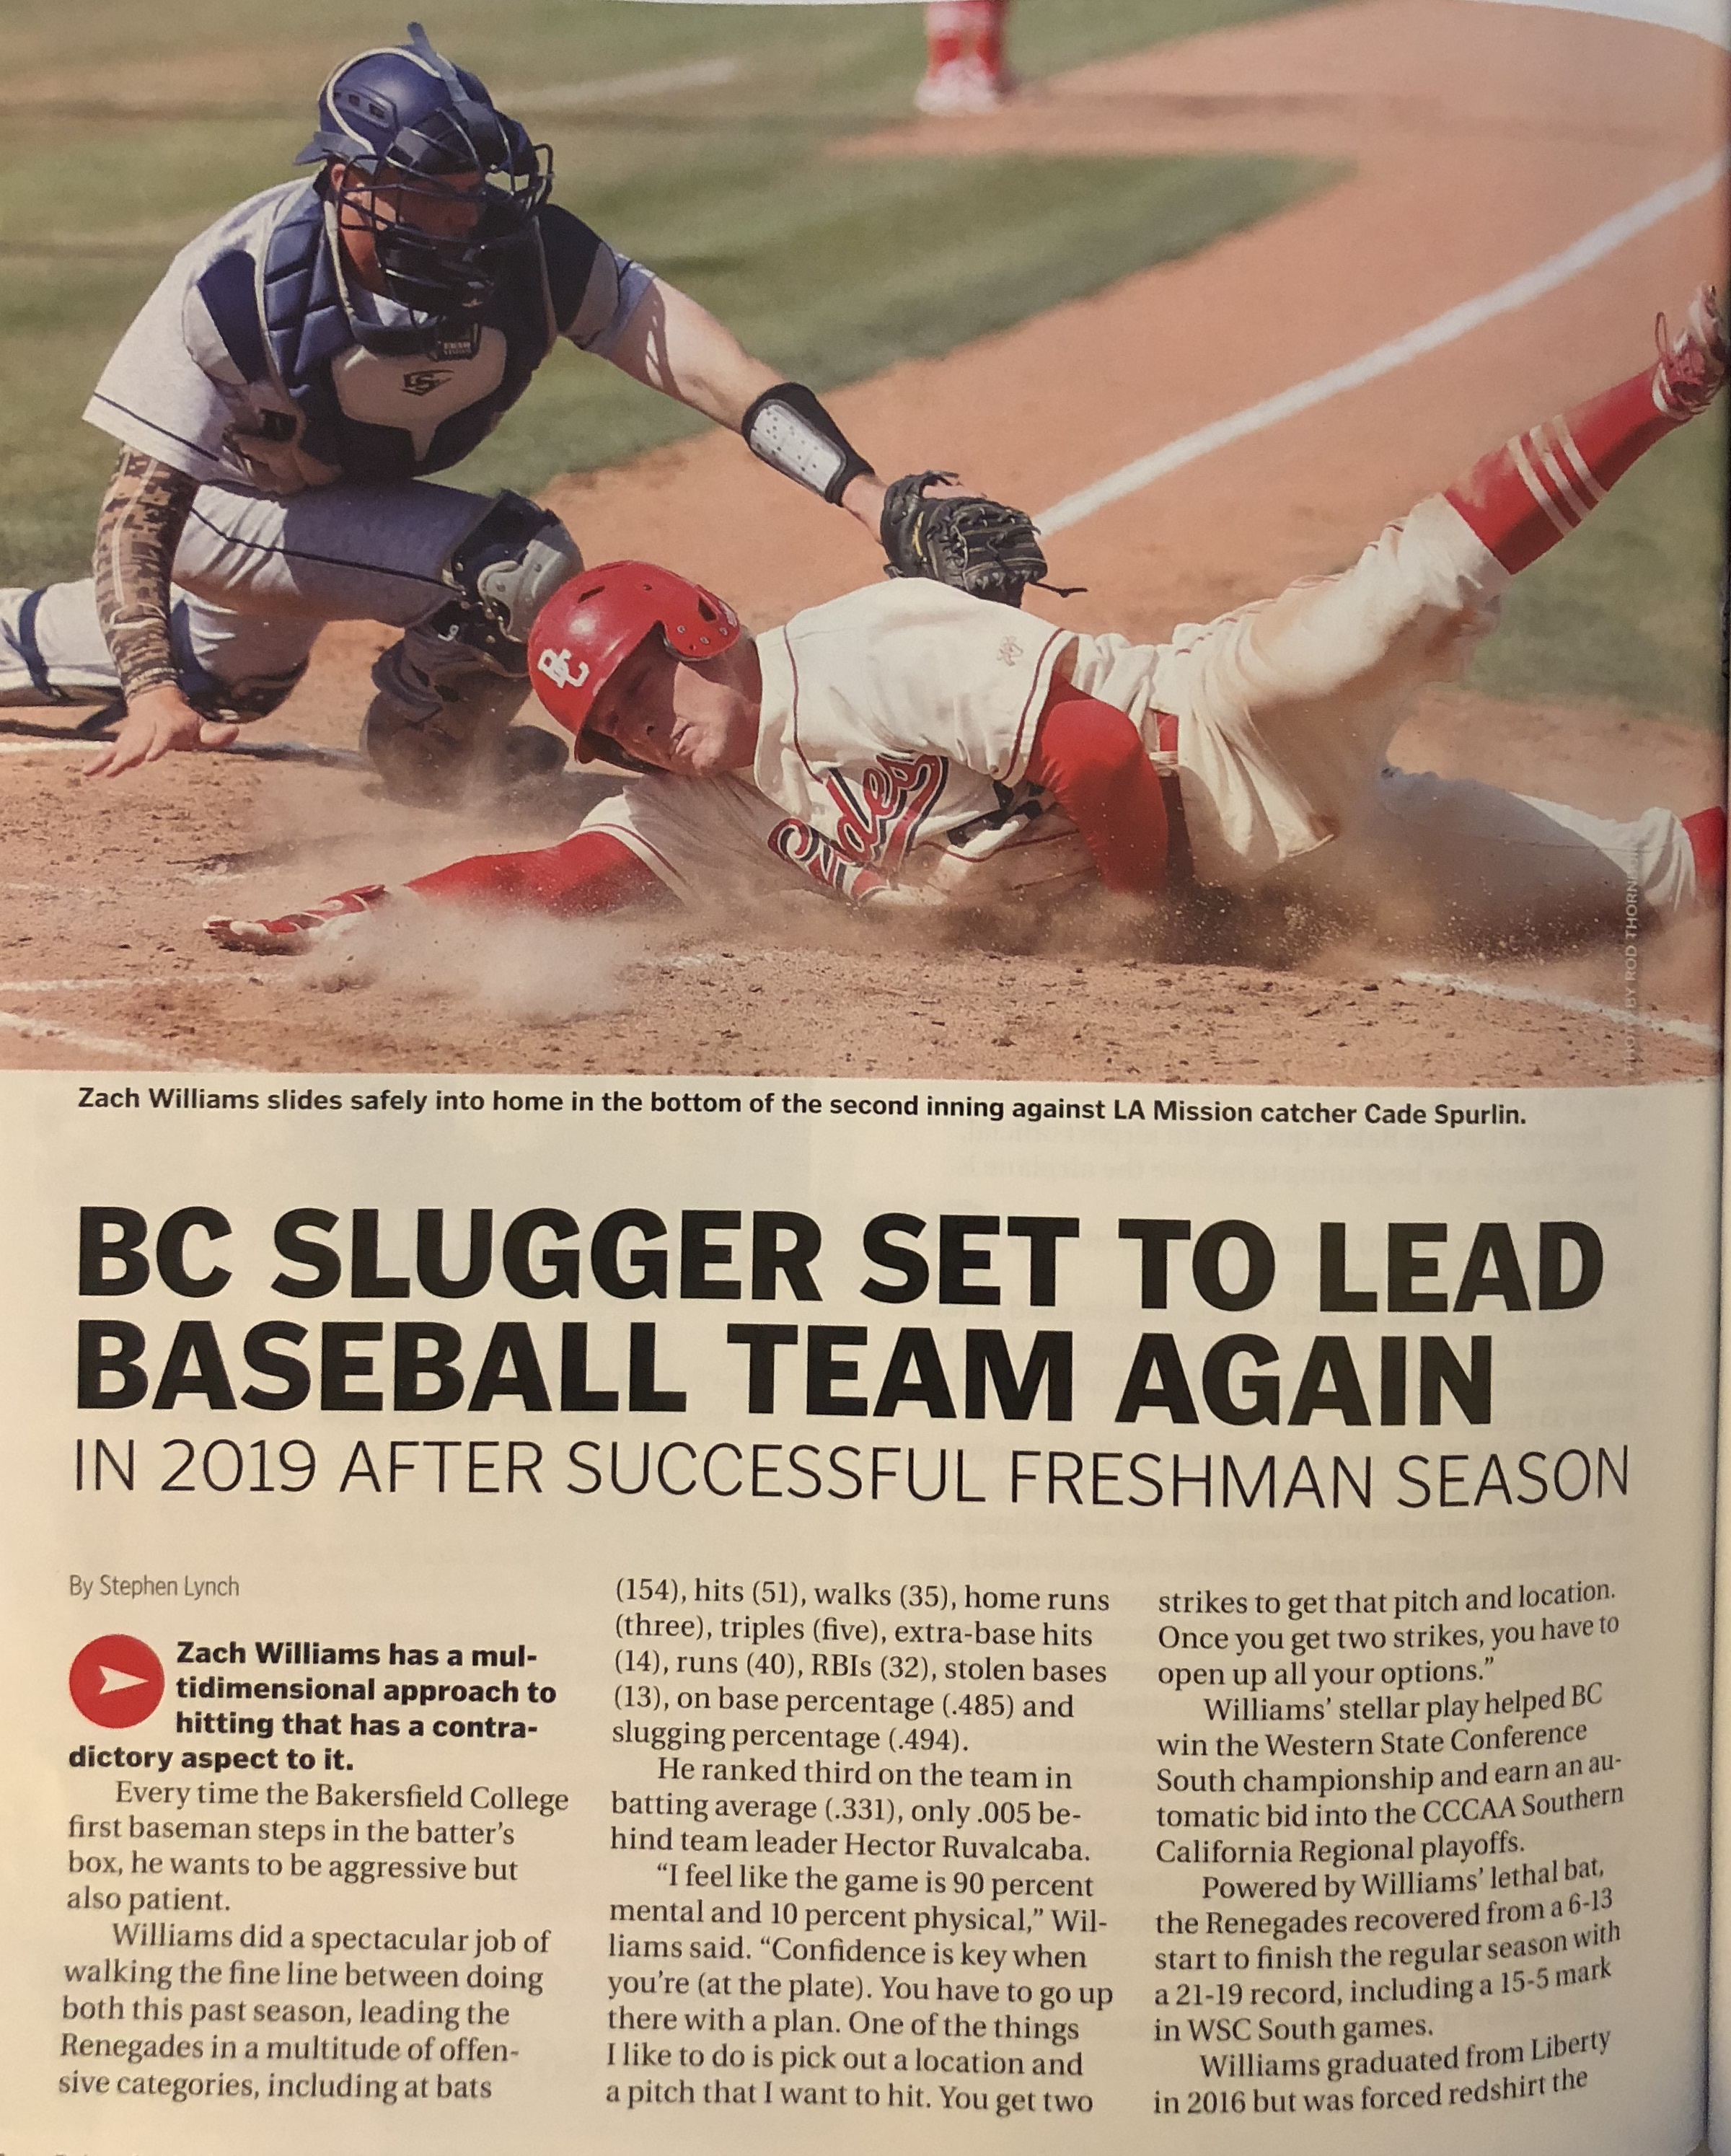 Zach Williams Renegade Baseball Athlete in Bakersfield Life May 26 2018